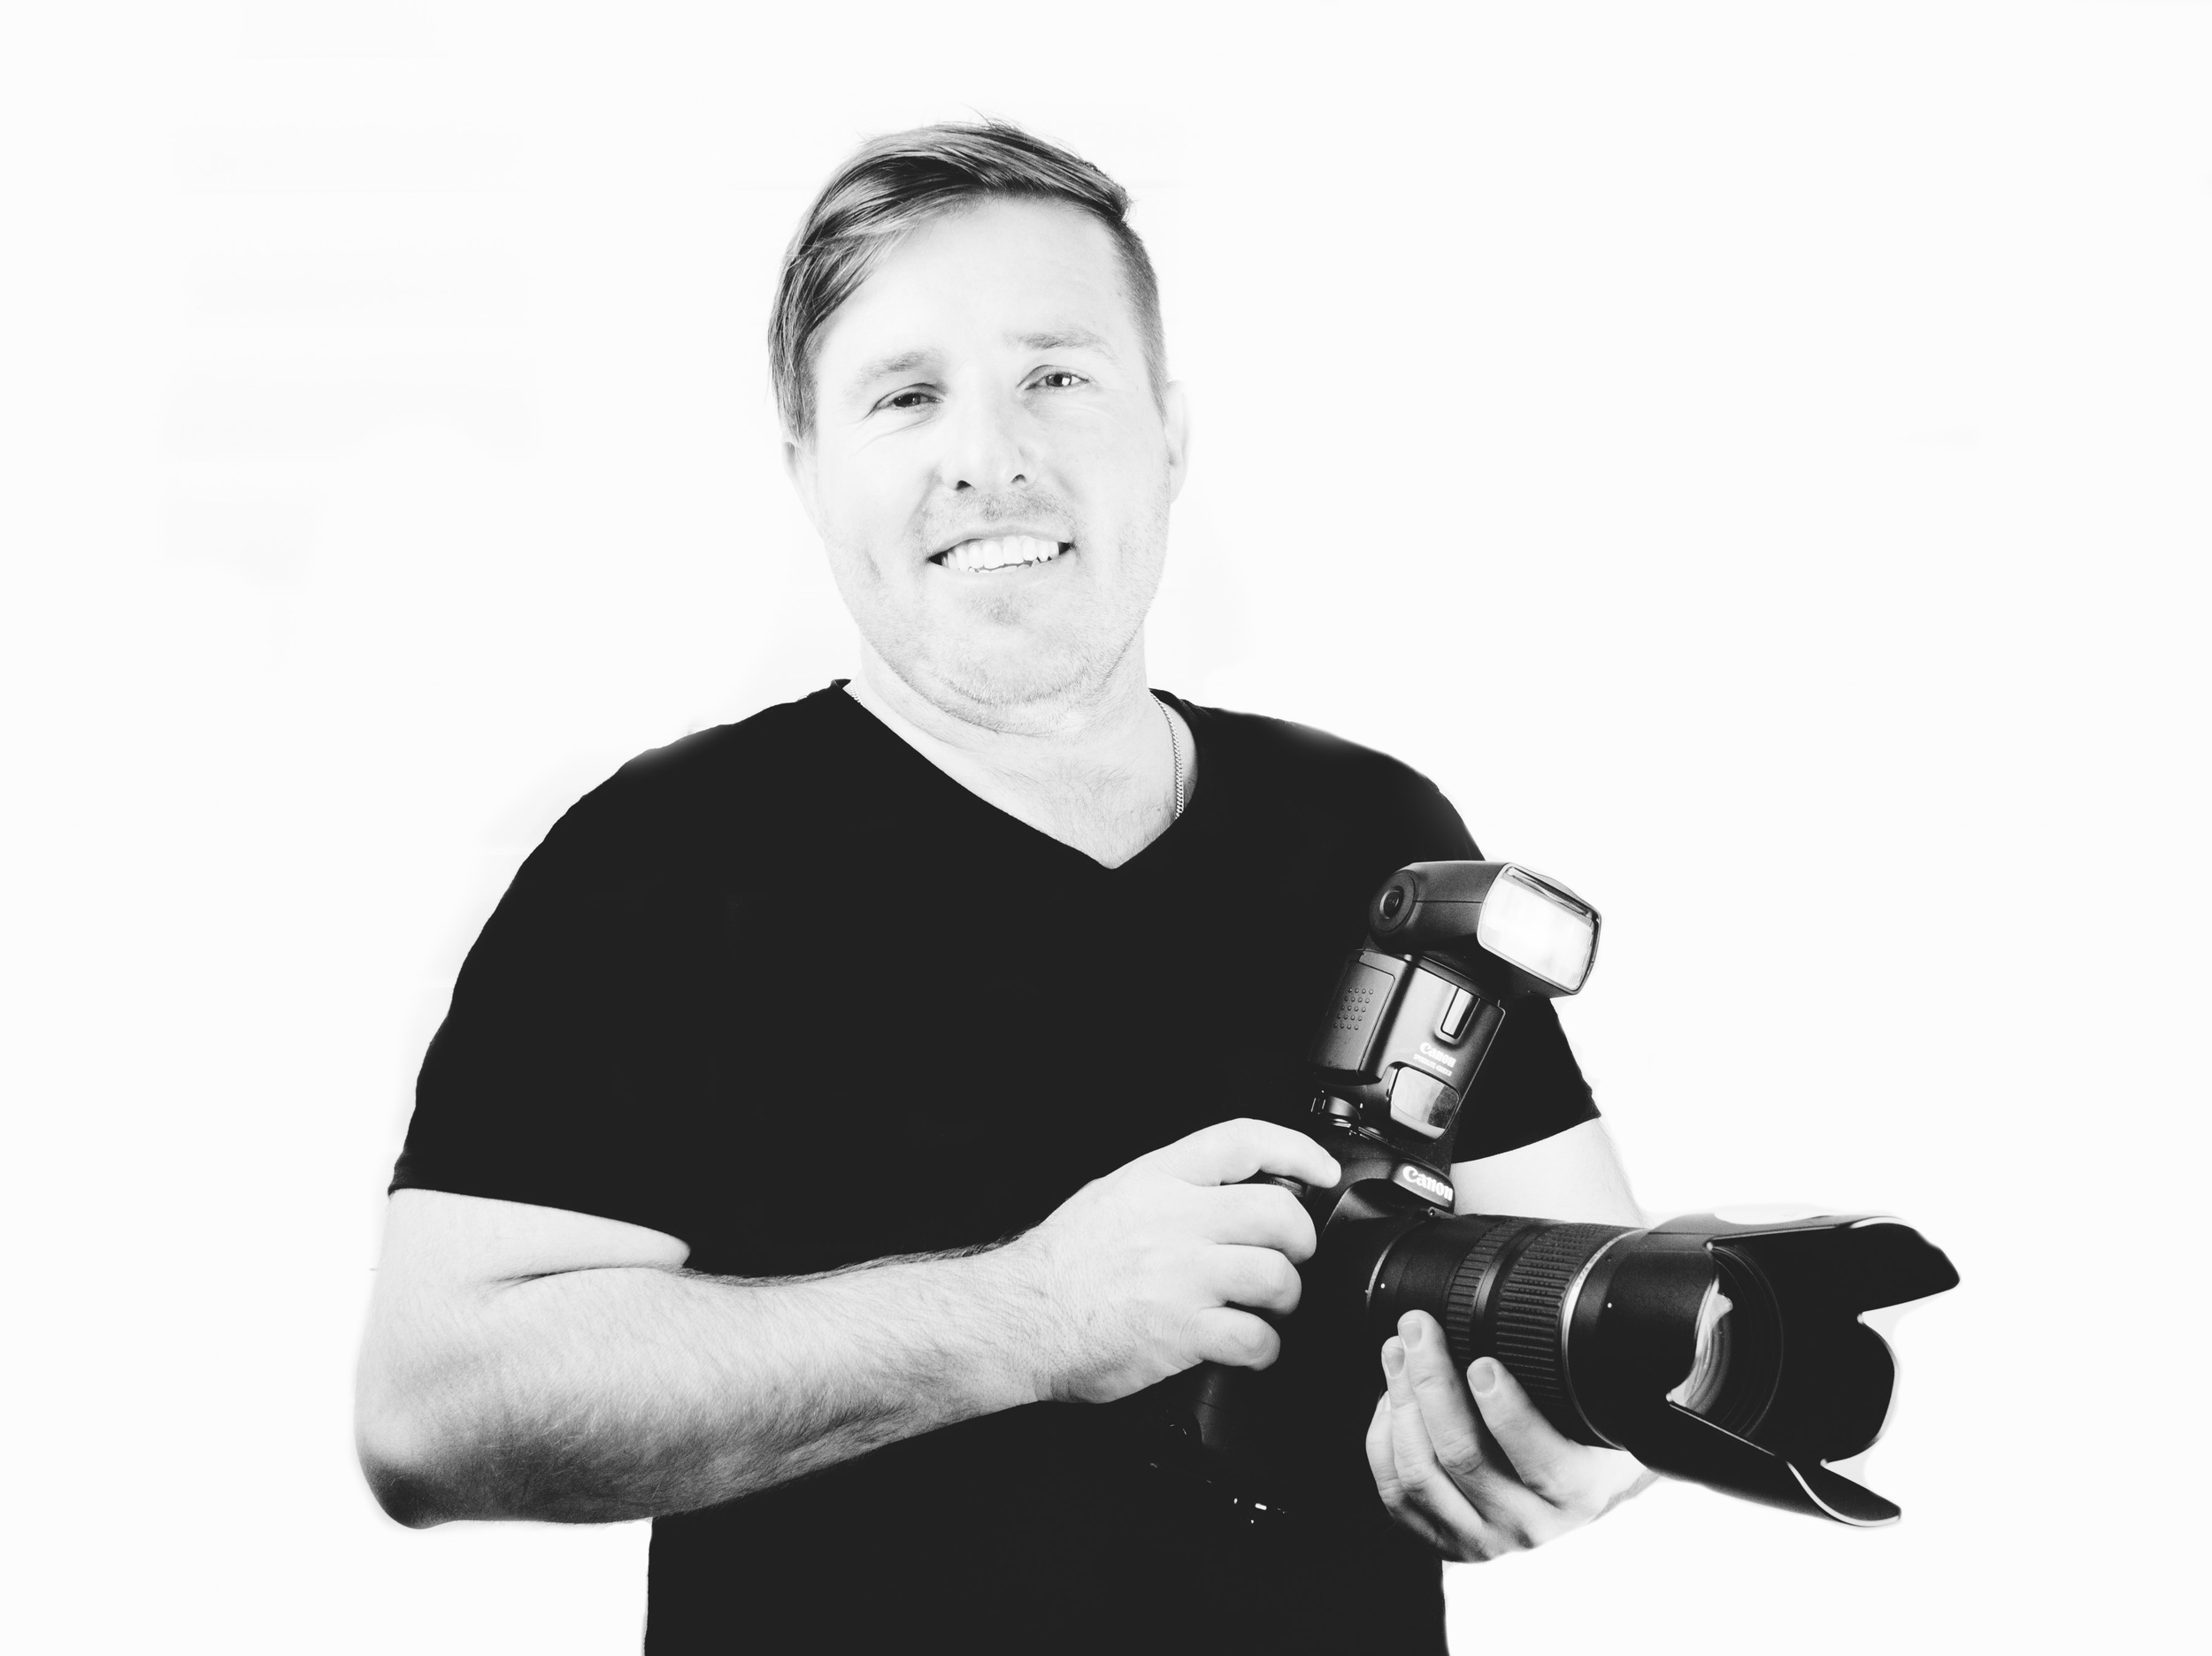 Nathan Puxty - Photonation Startup Founder